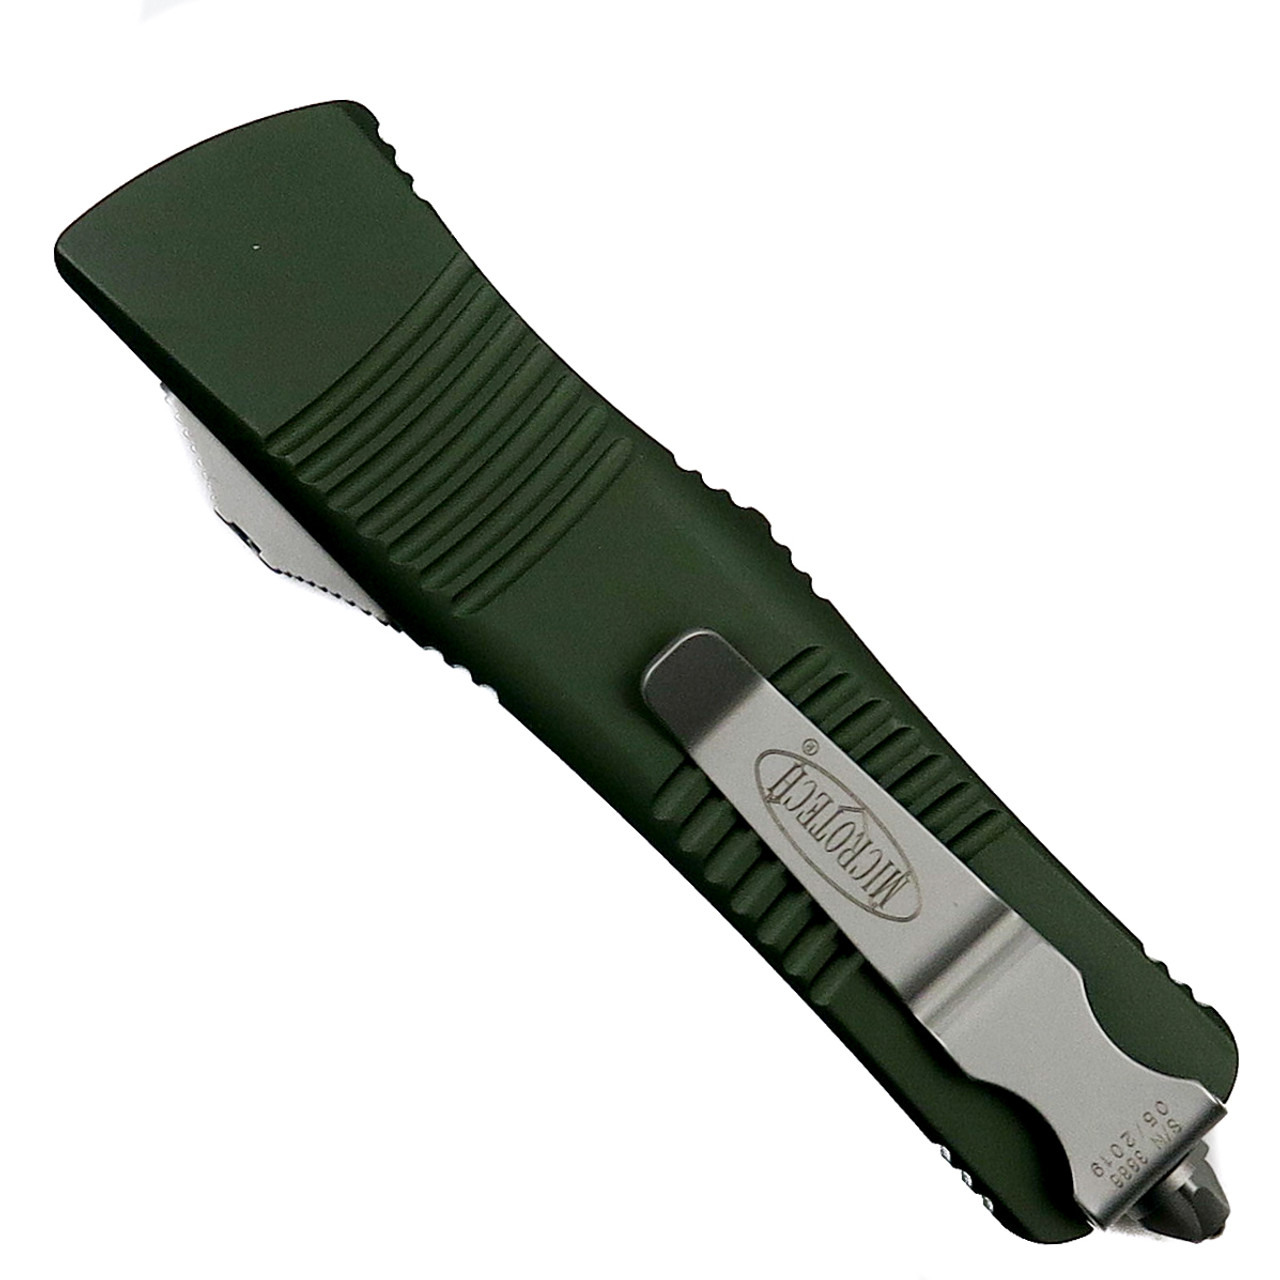 Microtech OD Green Troodon OTF Auto Knife, Satin Combo Blade Back View